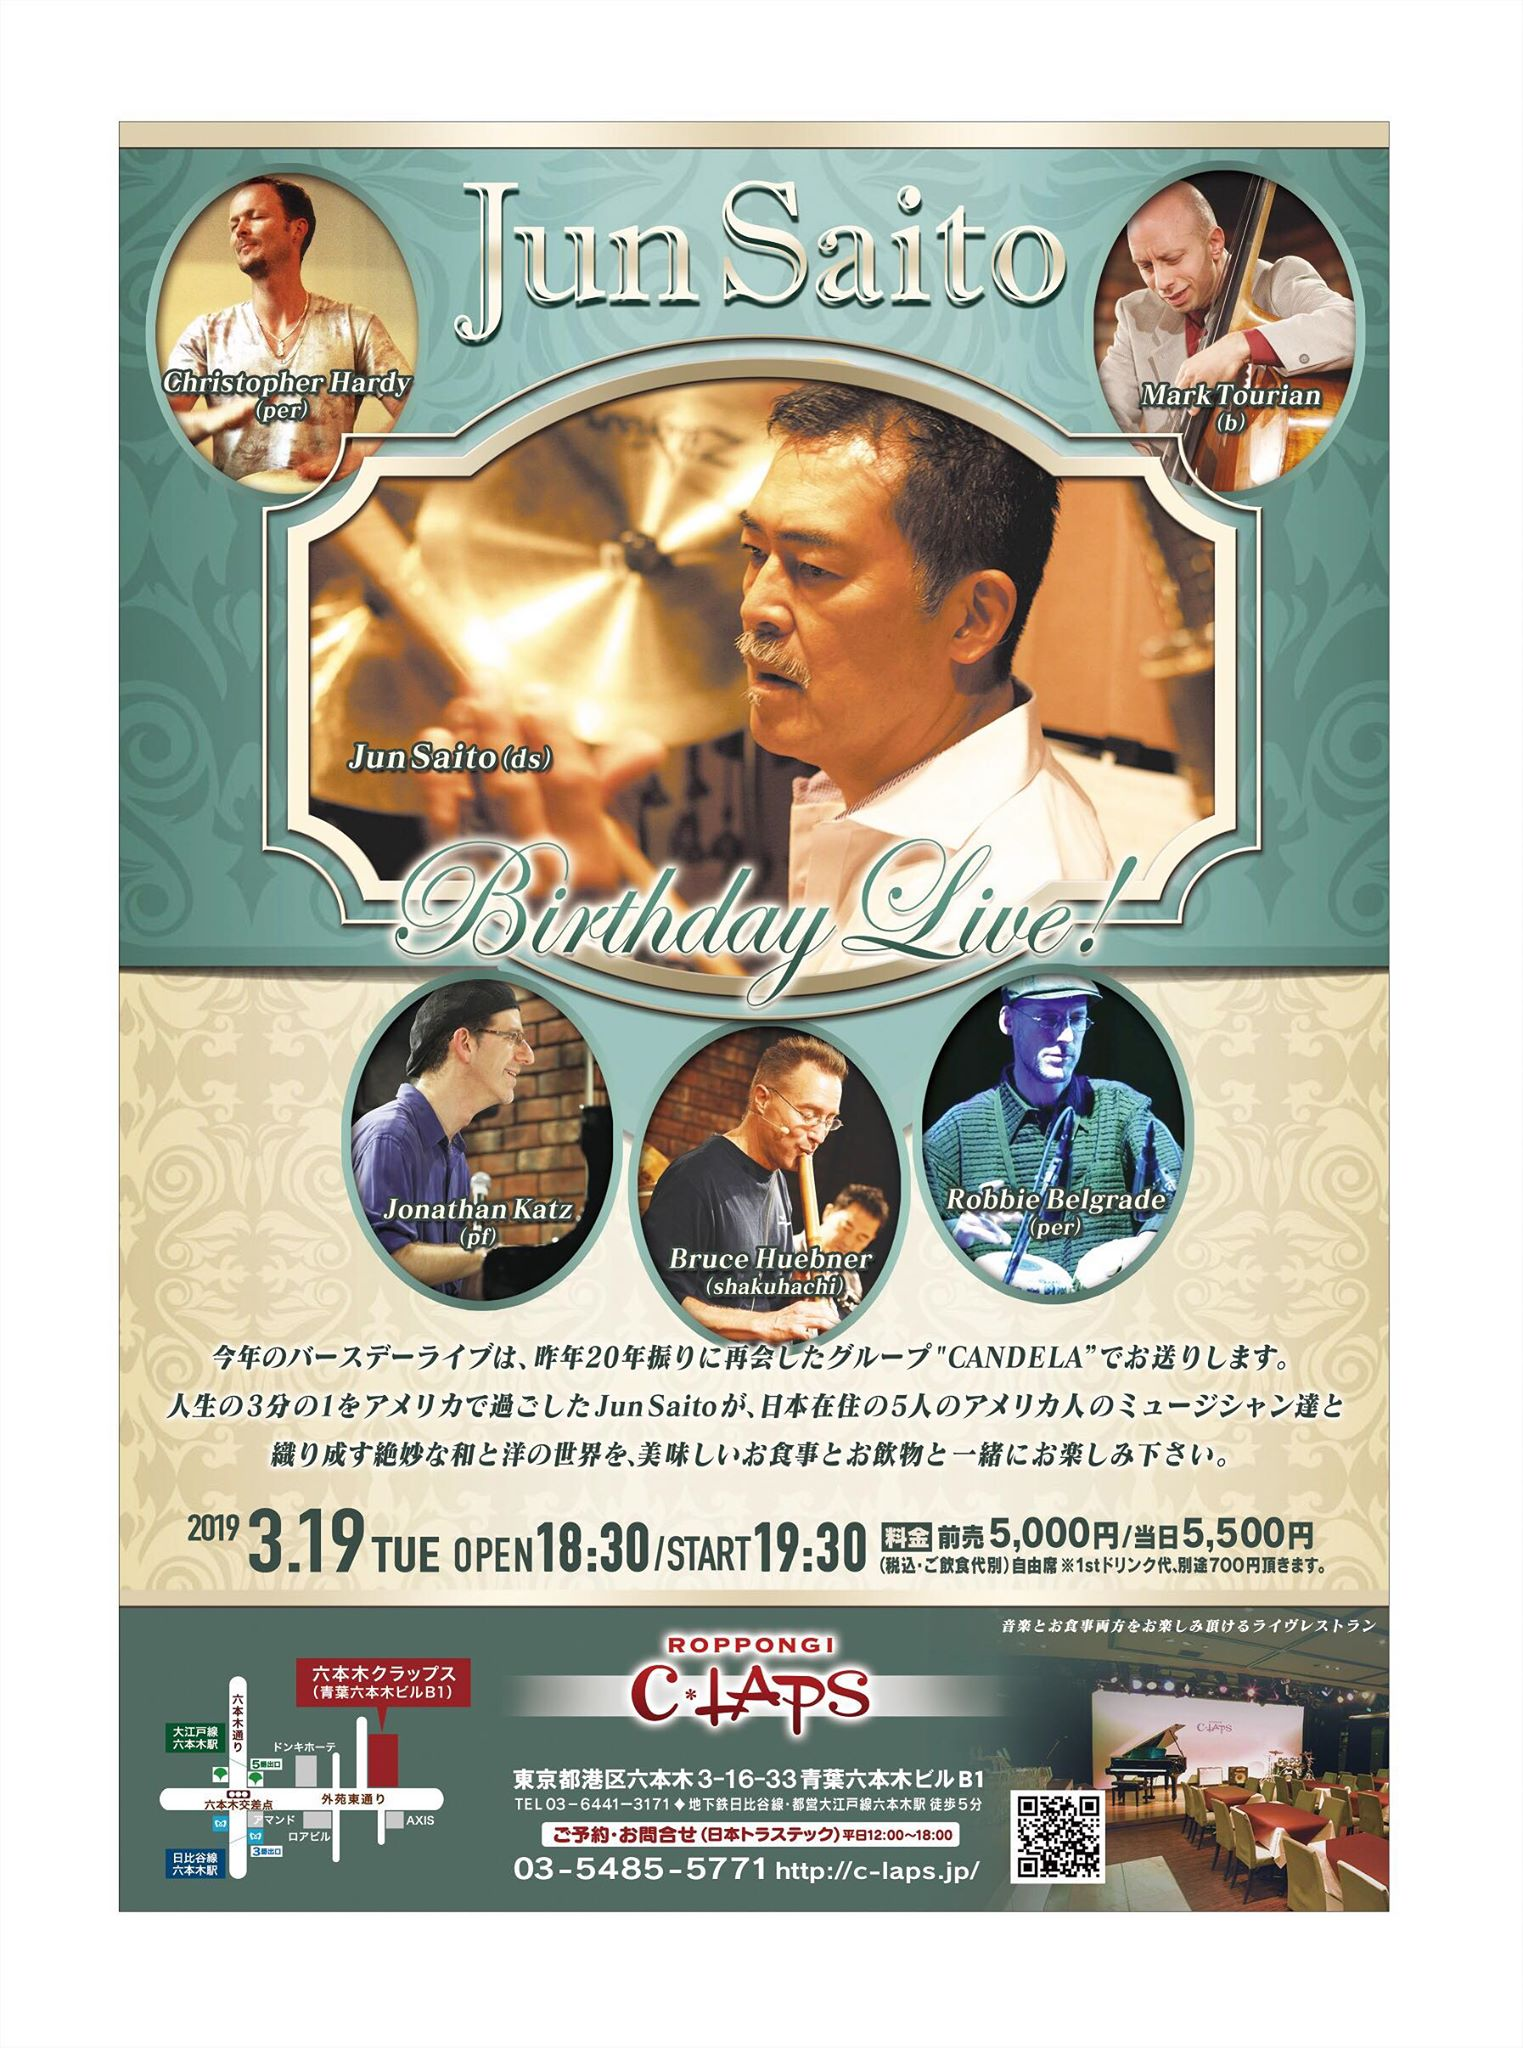 Upcoming Candela Concert in Tokyo    On March 18th we celebrate Jun Bug Saito's birthday.    C*LAPS 六本木クラップス  東京都港区六本木3-16-33 青葉六本木ビルB1   電話番号:   03-5485-5771    Jun Bug Saito    Birthday Live featuring:     Jonathan Katz    (piano and french horn)     Bruce Huebner    (shakuhachi)     Mark Tourian    (bass and double bass)     Robby Belgrade    (woodwinds and percussion)     Christopher Hardy    (percussion)     Jun Bug Saito    (drums and percussion)    Please call Bruce for tickets at:    (090)6015-4144.    Or email at:    brucehuebner18@gmail.com